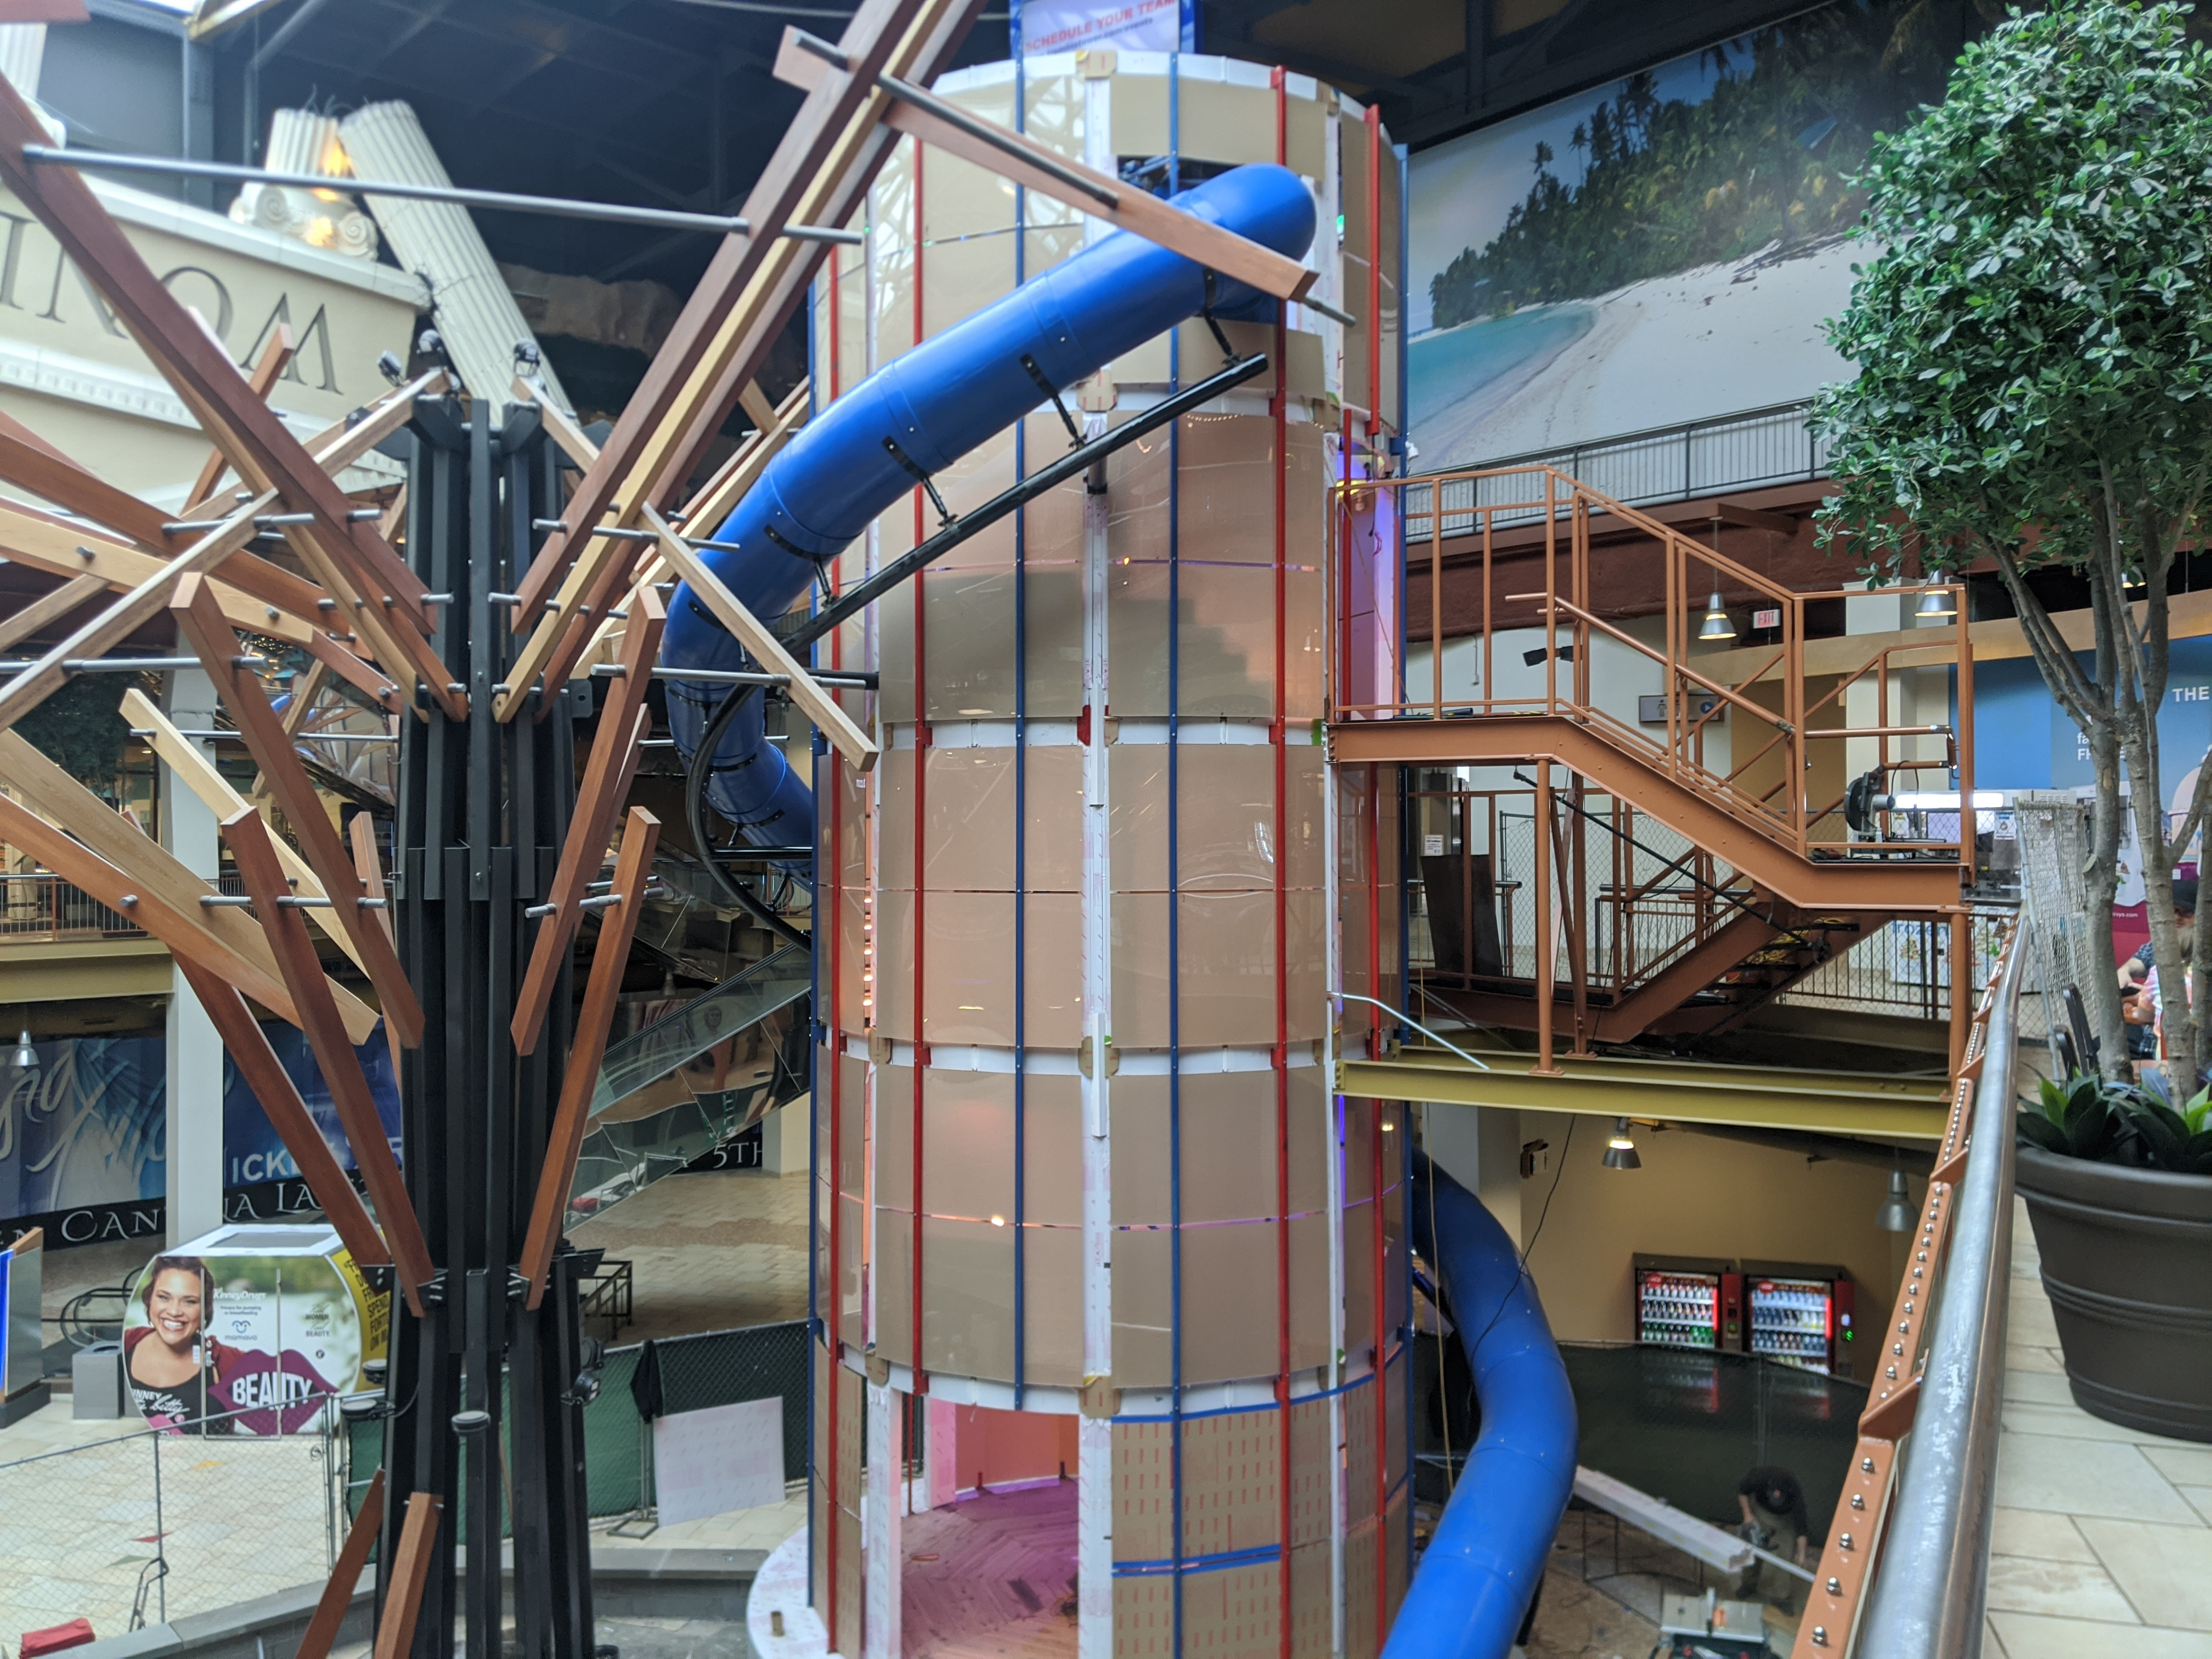 Trombi's Tower vertical obstacle course to open next week at Destiny USA